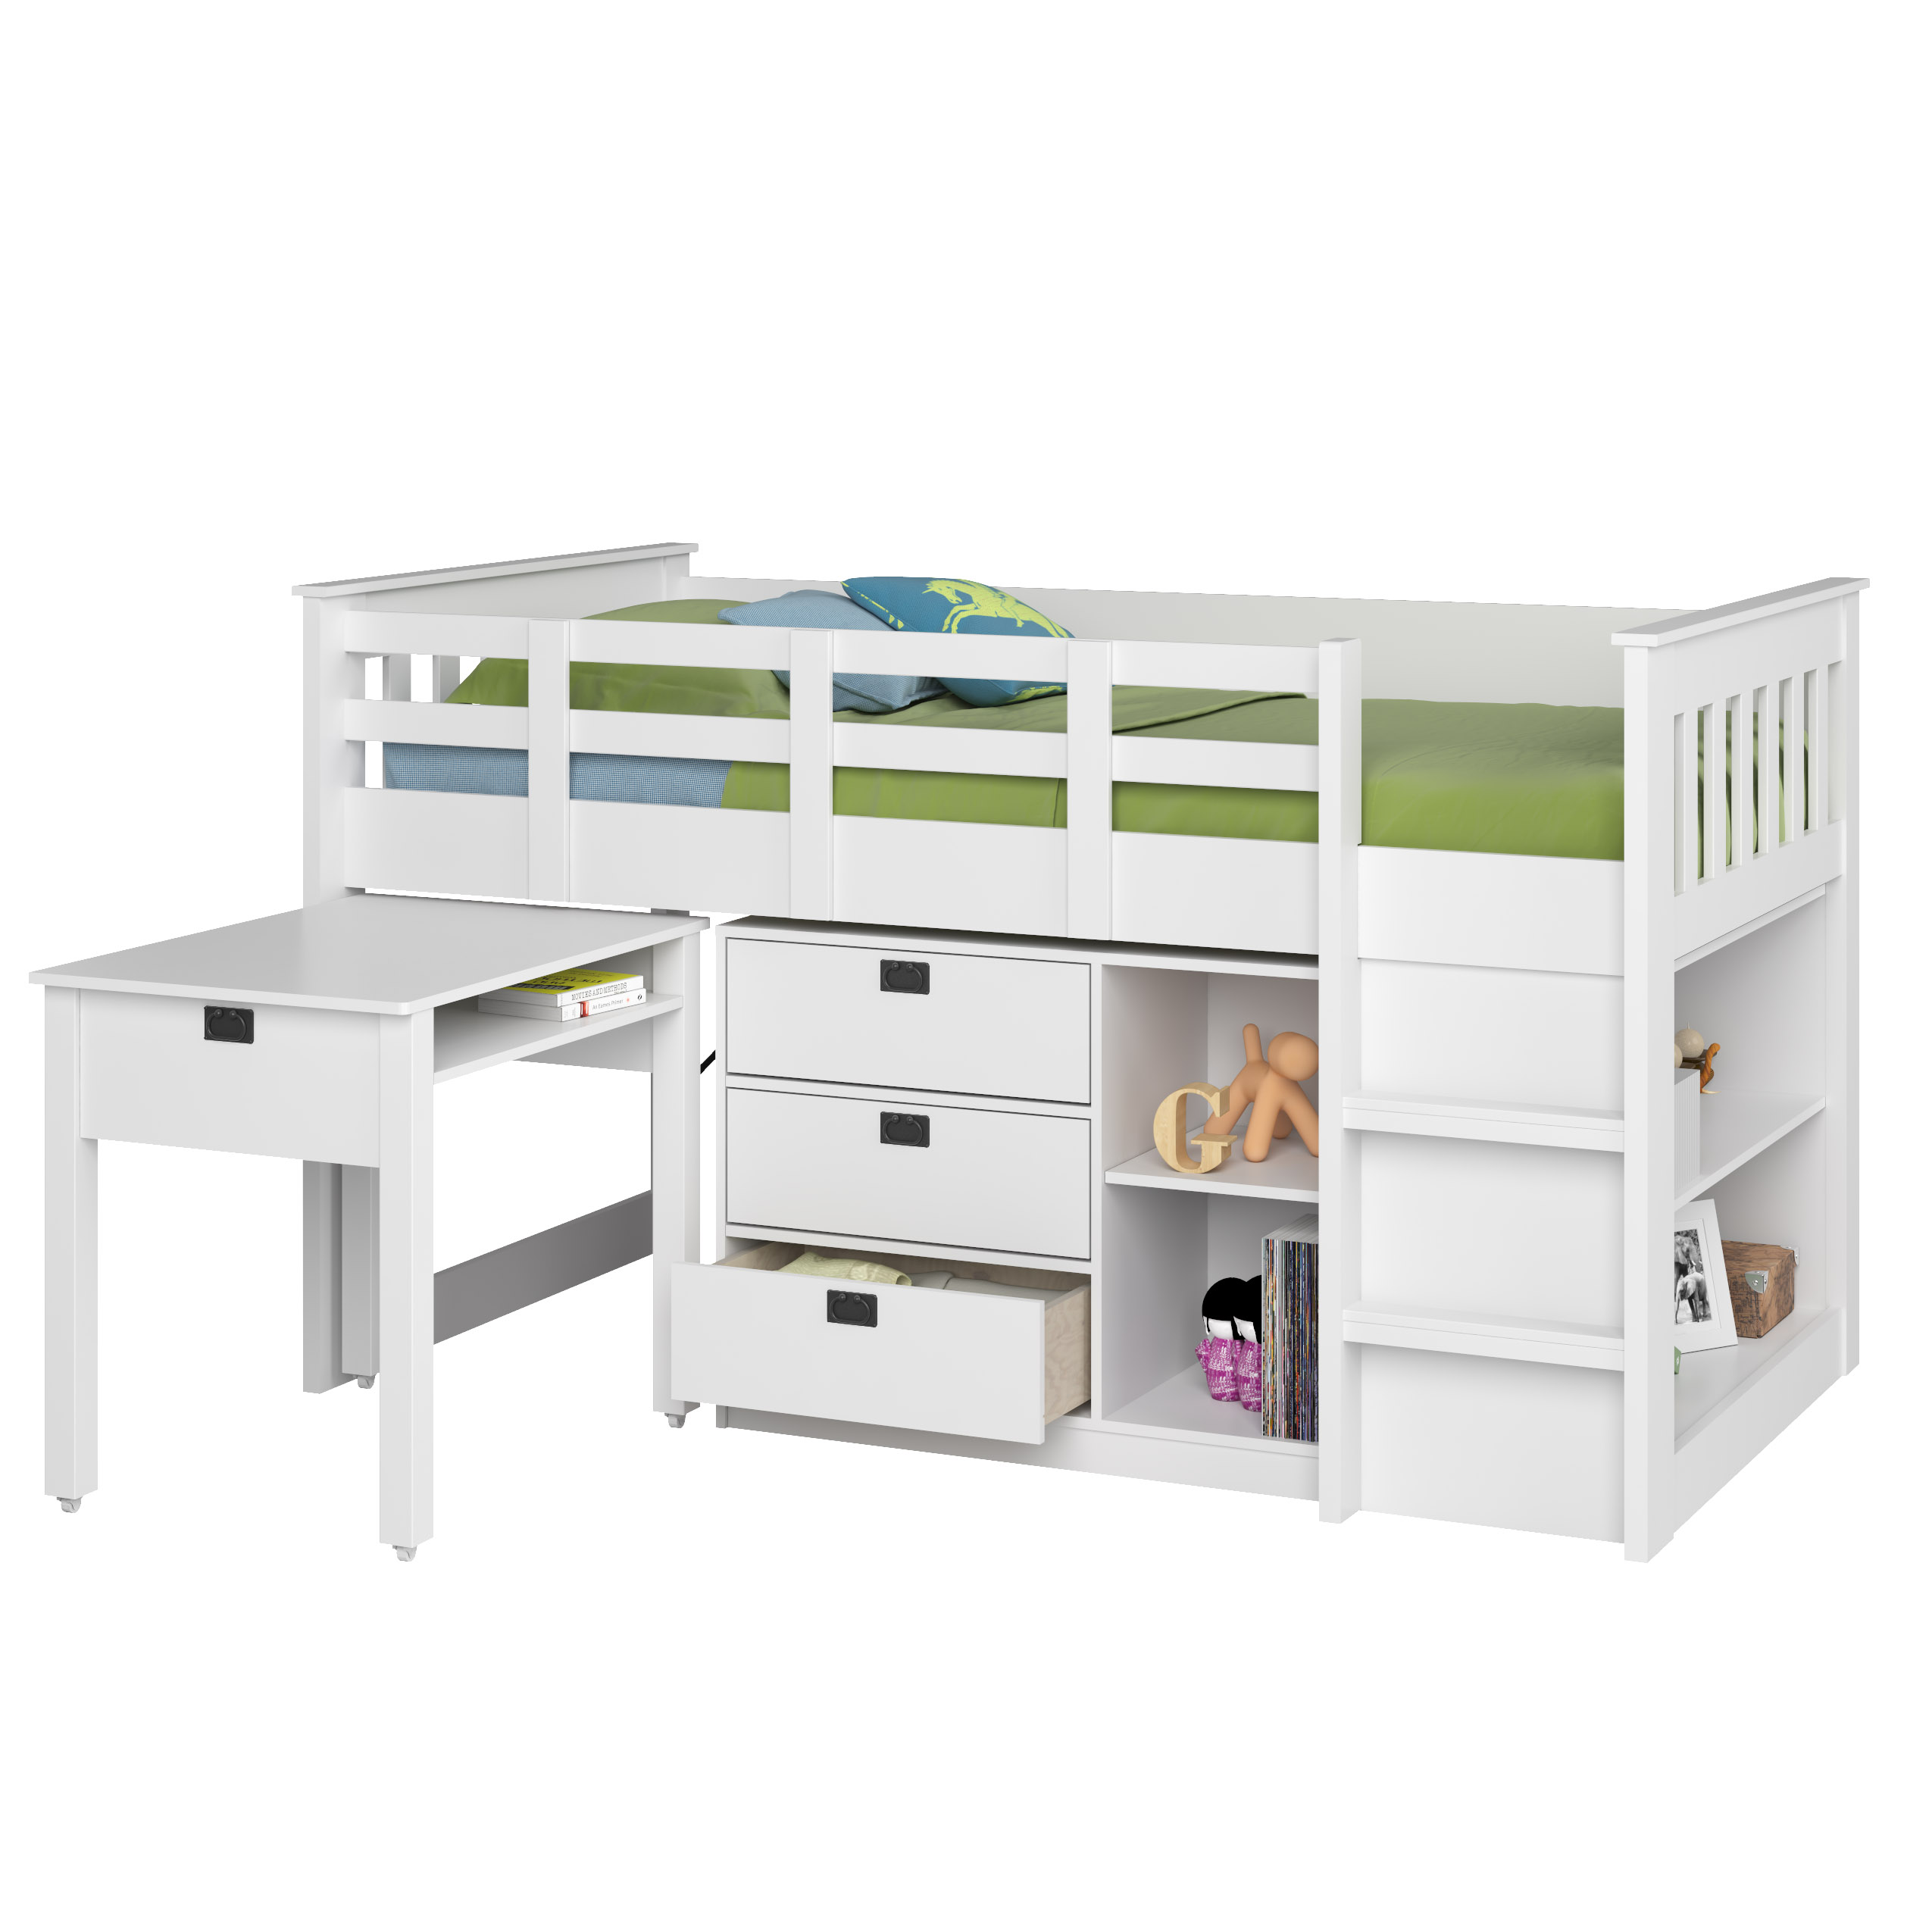 Kids Twin Loft Bed With Storage In 2020 Bed Desk Bunk Bed With Desk Loft Bed